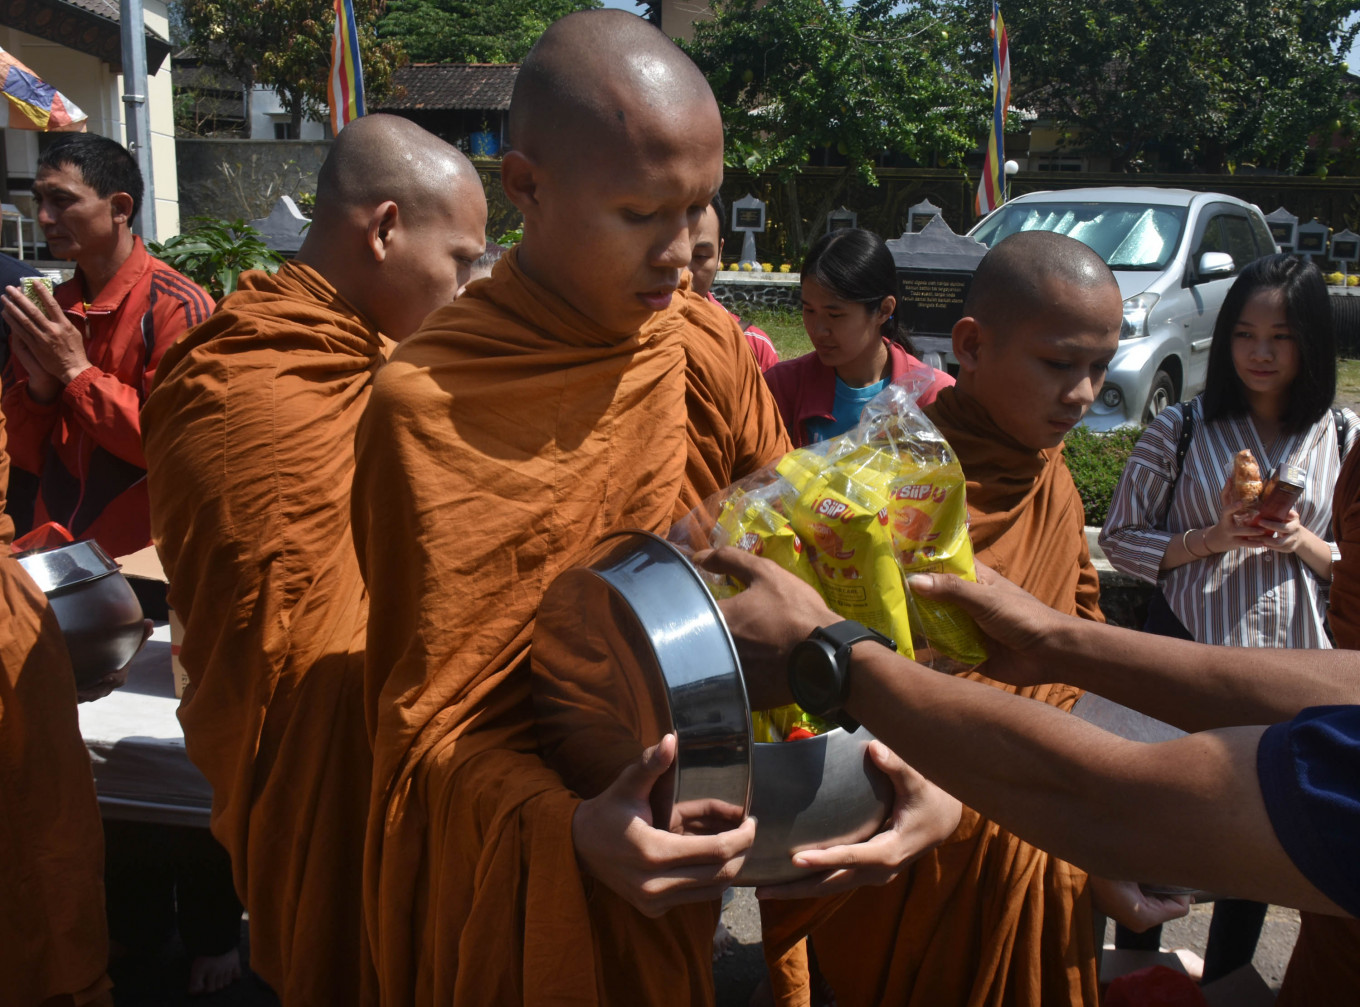 Novice monks receive alms from fellow Buddhists during the Pindhapata ritual at  Dhamadipa Arama Temple in Batu, East Java, on Monday. JP/Aman Rochman